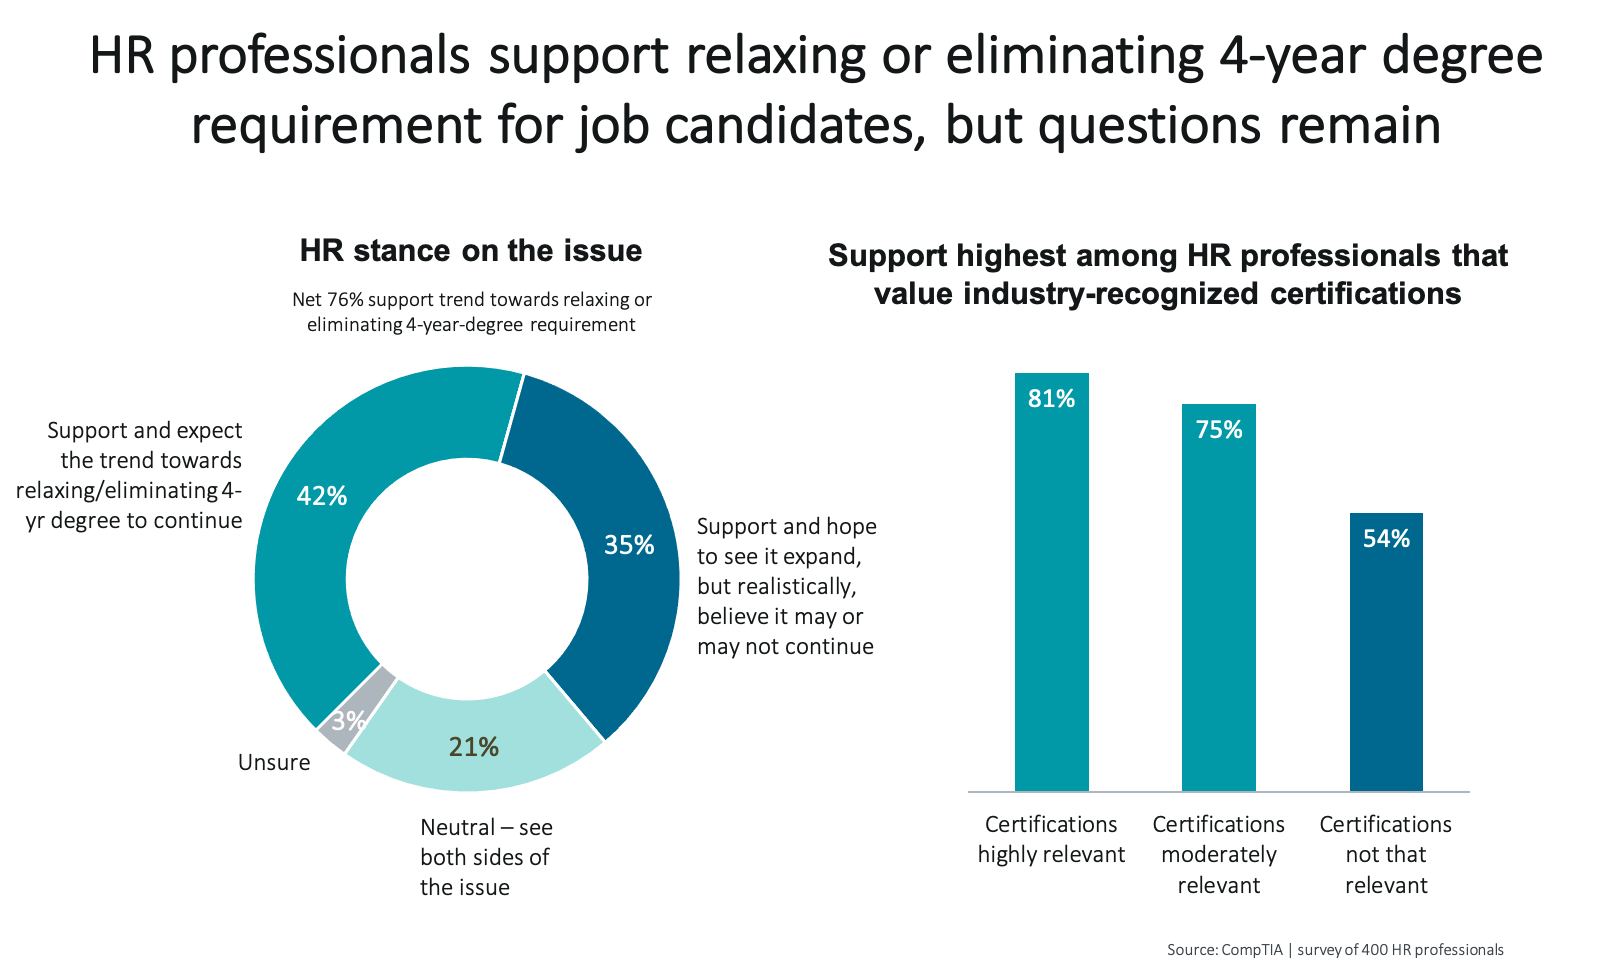 HR professionals support relaxing or eliminating 4-year degree requirement for job candidates, but questions remain